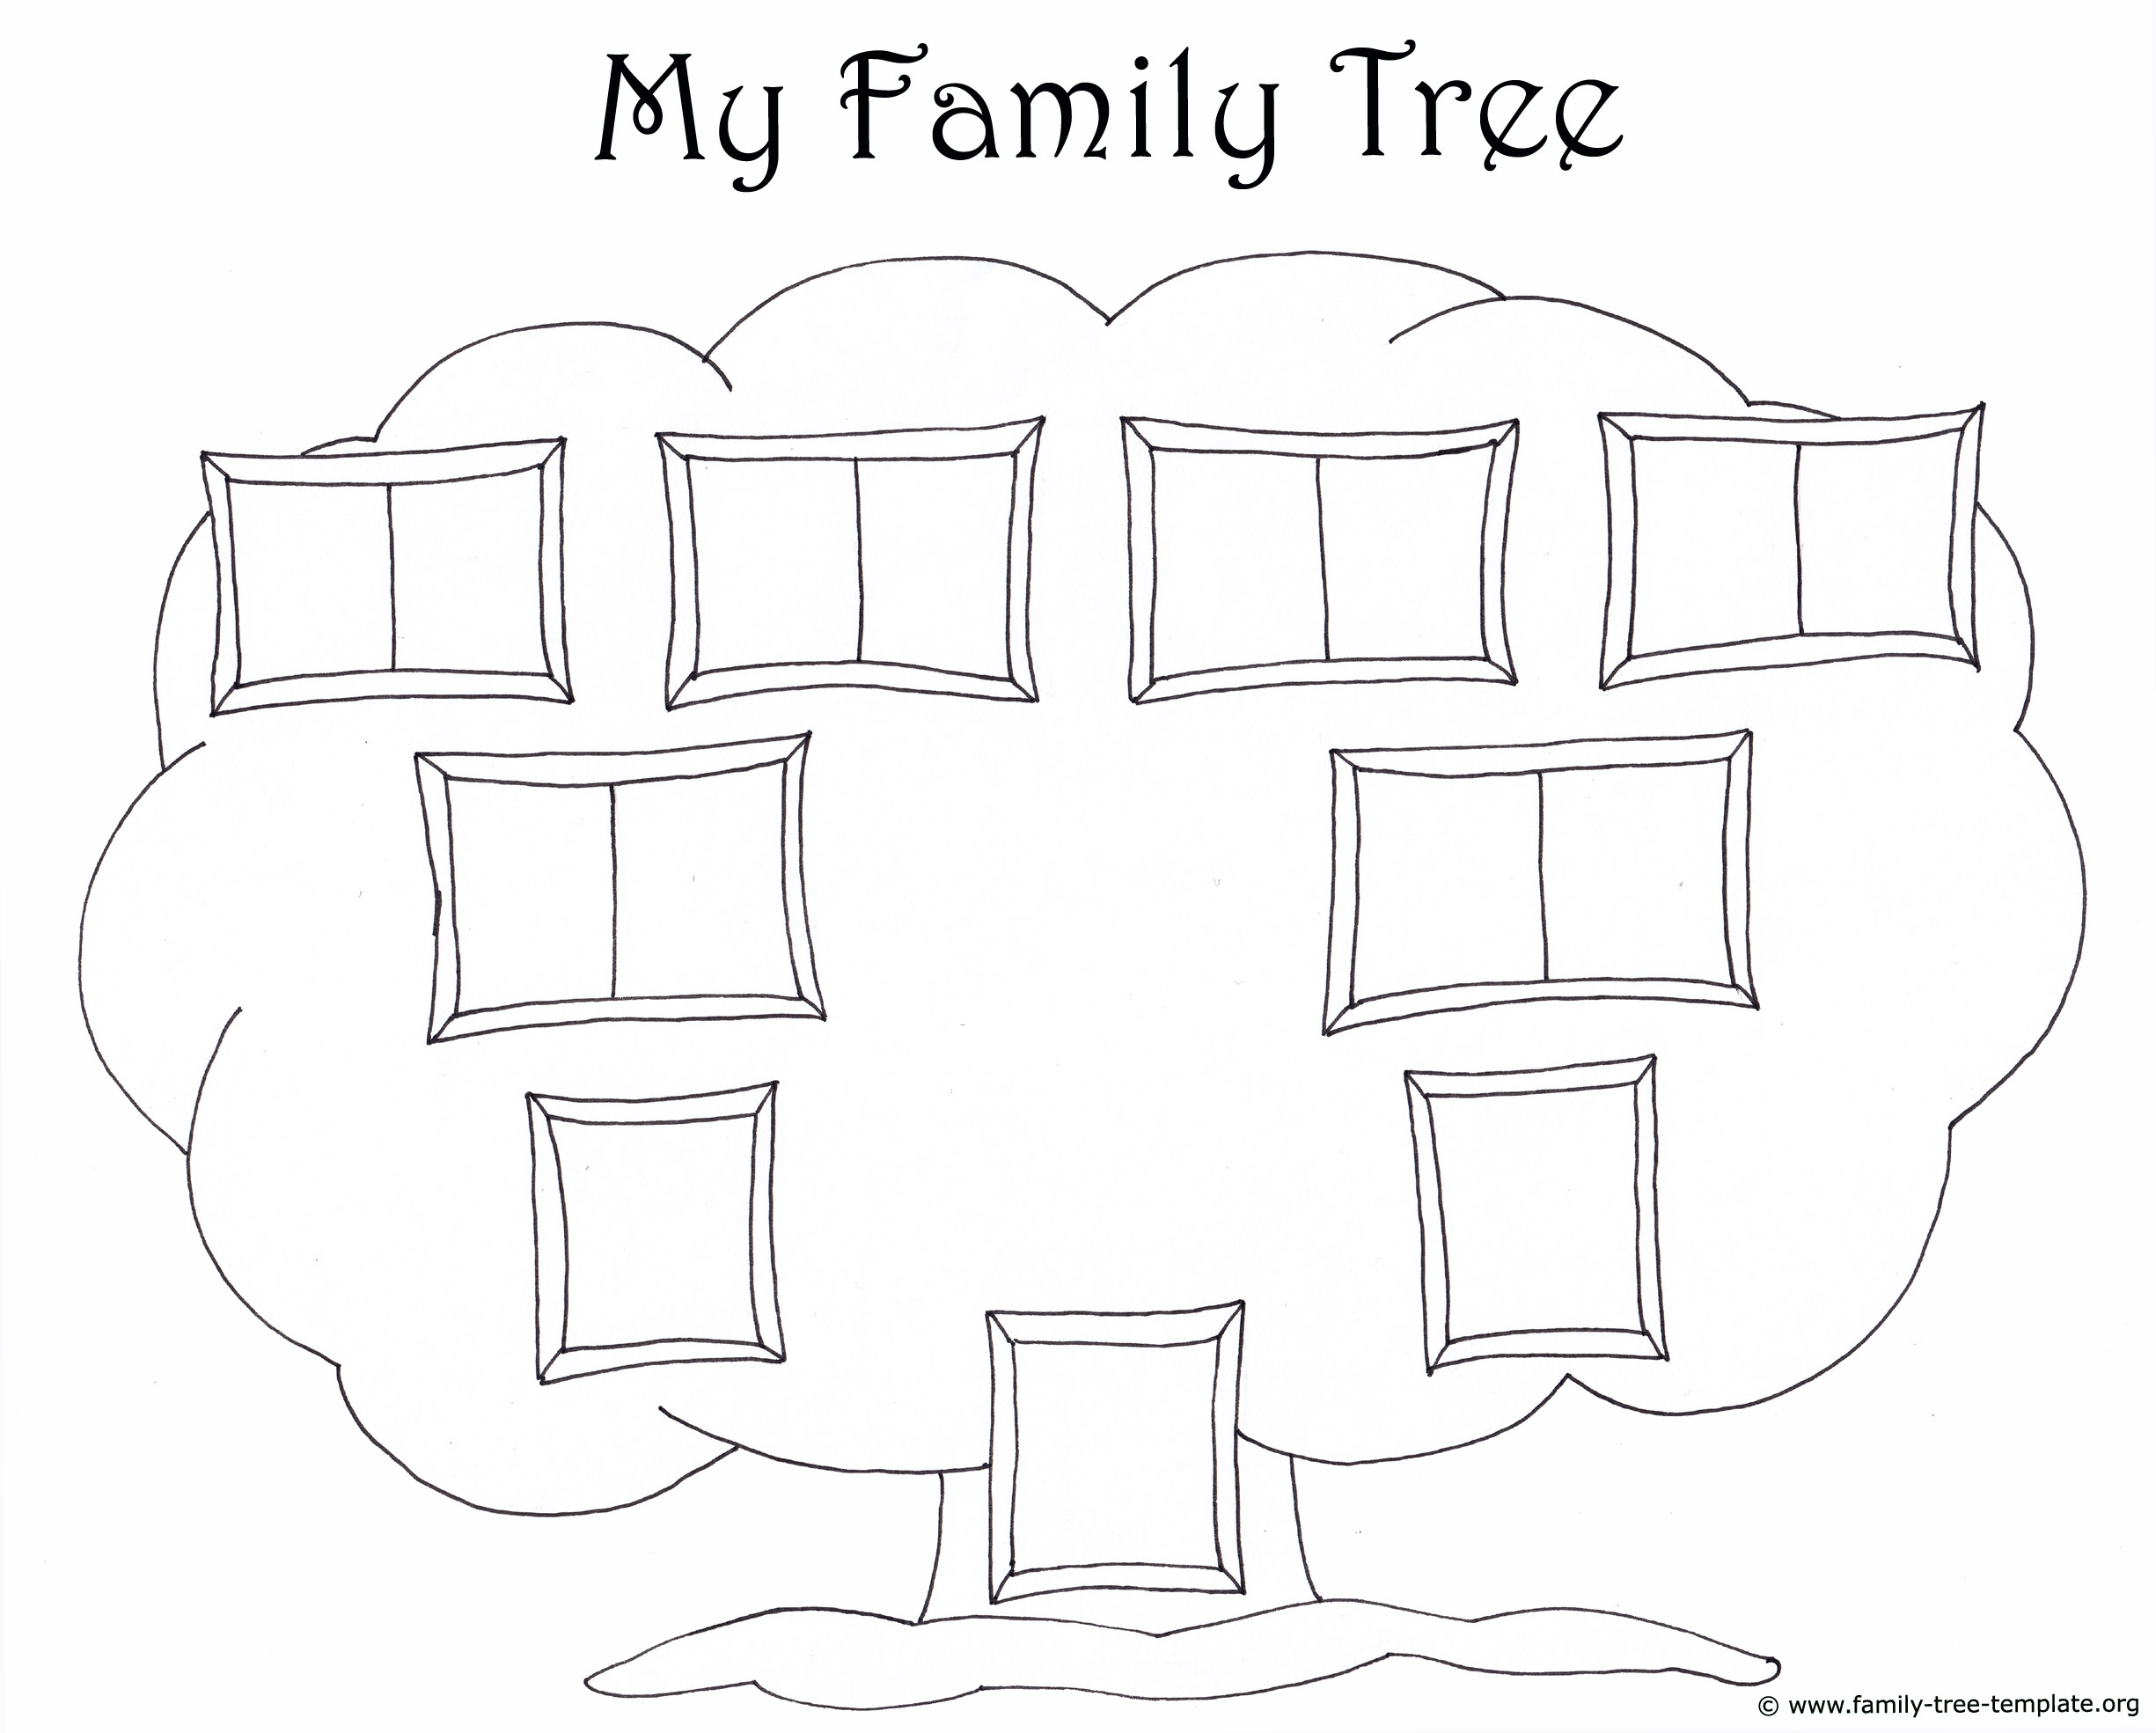 Family tree template for kids printable genealogy charts for Blank family tree template for kids